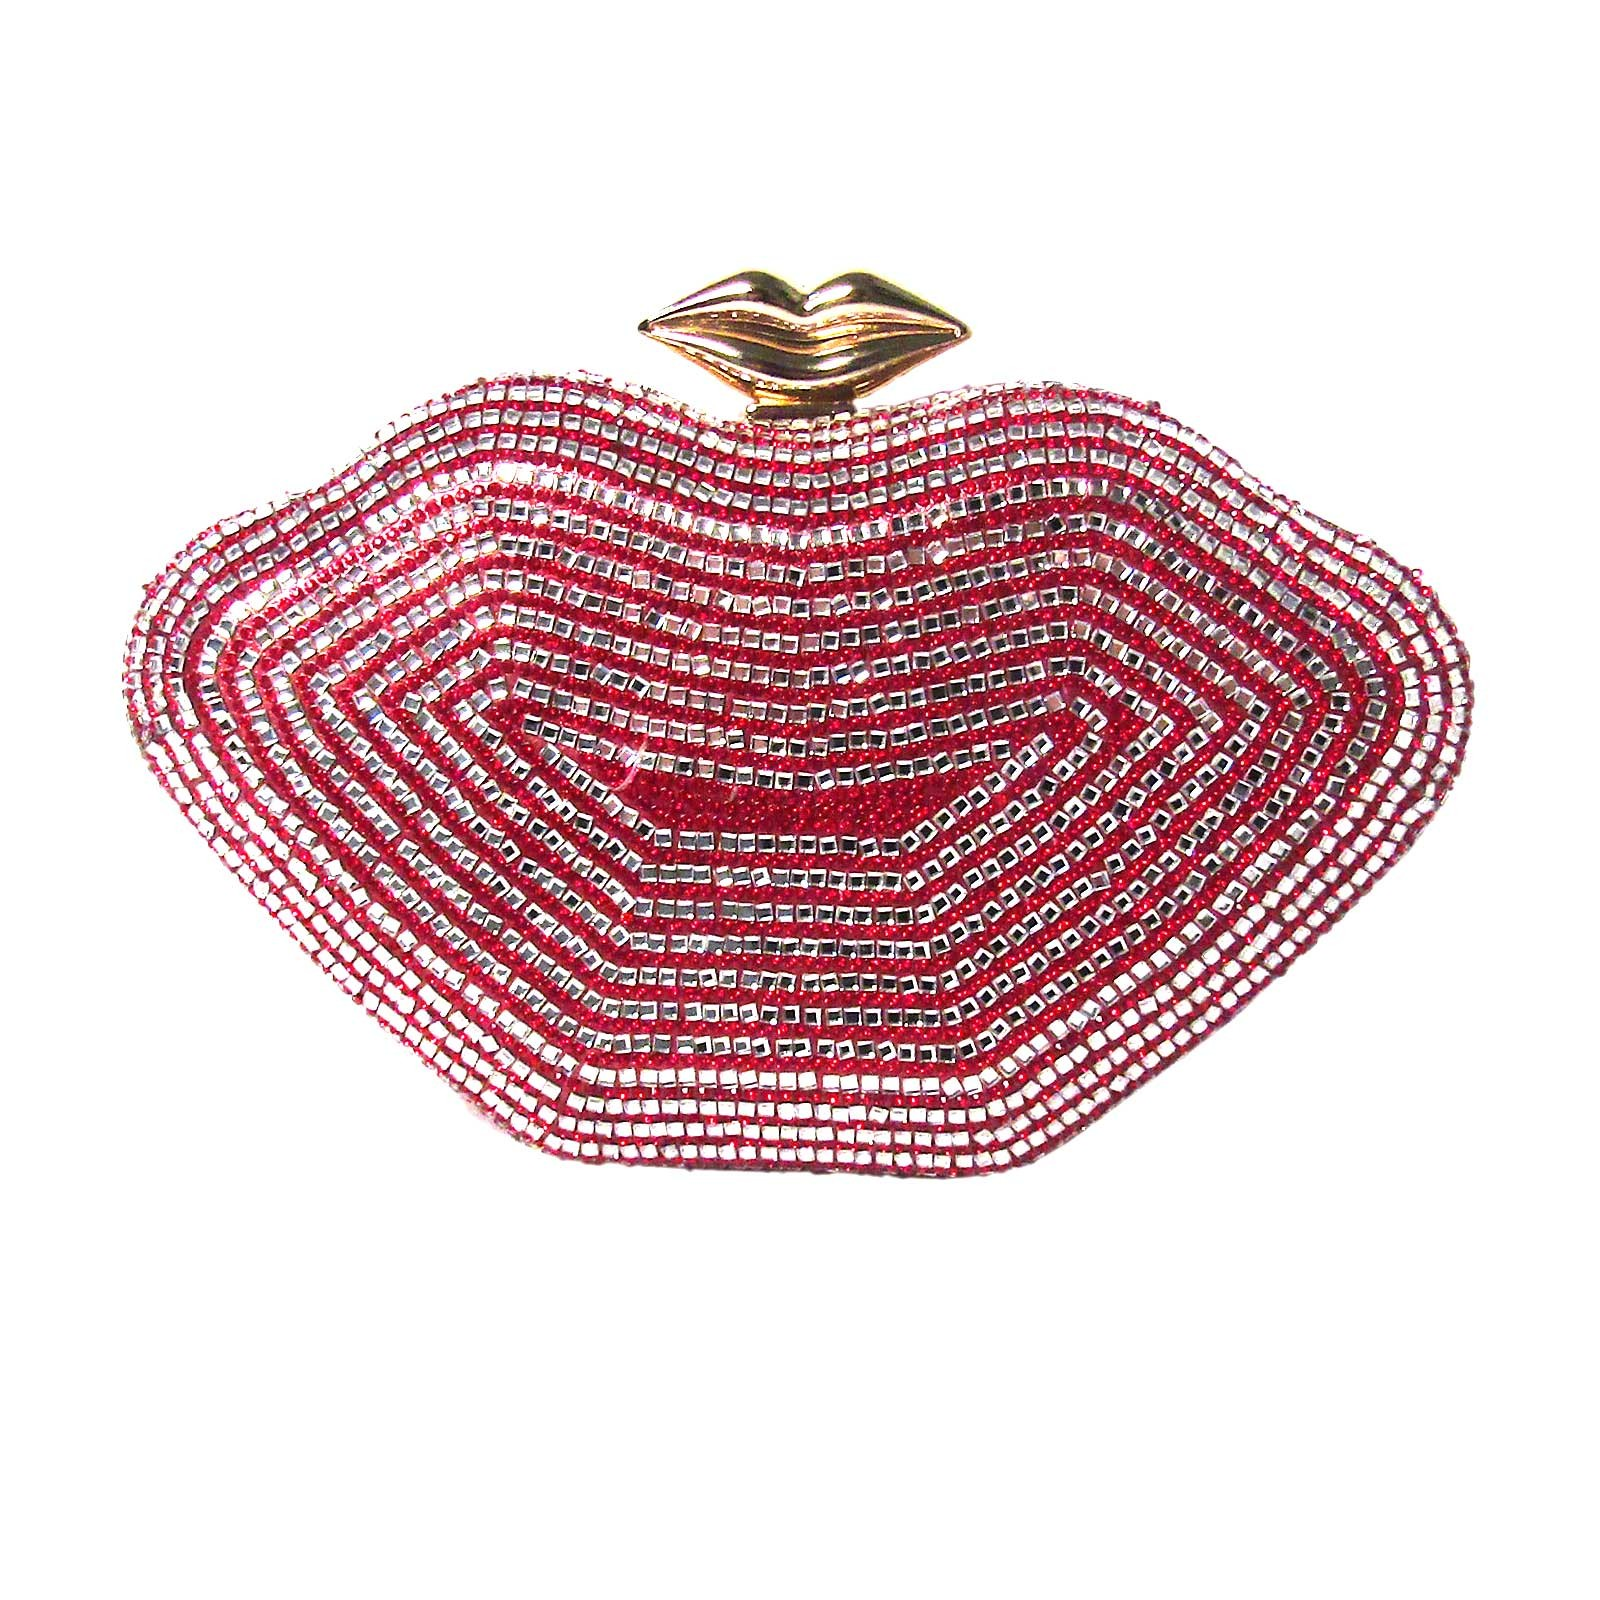 ROMANTIC RED SILVER LIP SHAPE EVENING CASE CLUTCH BAG